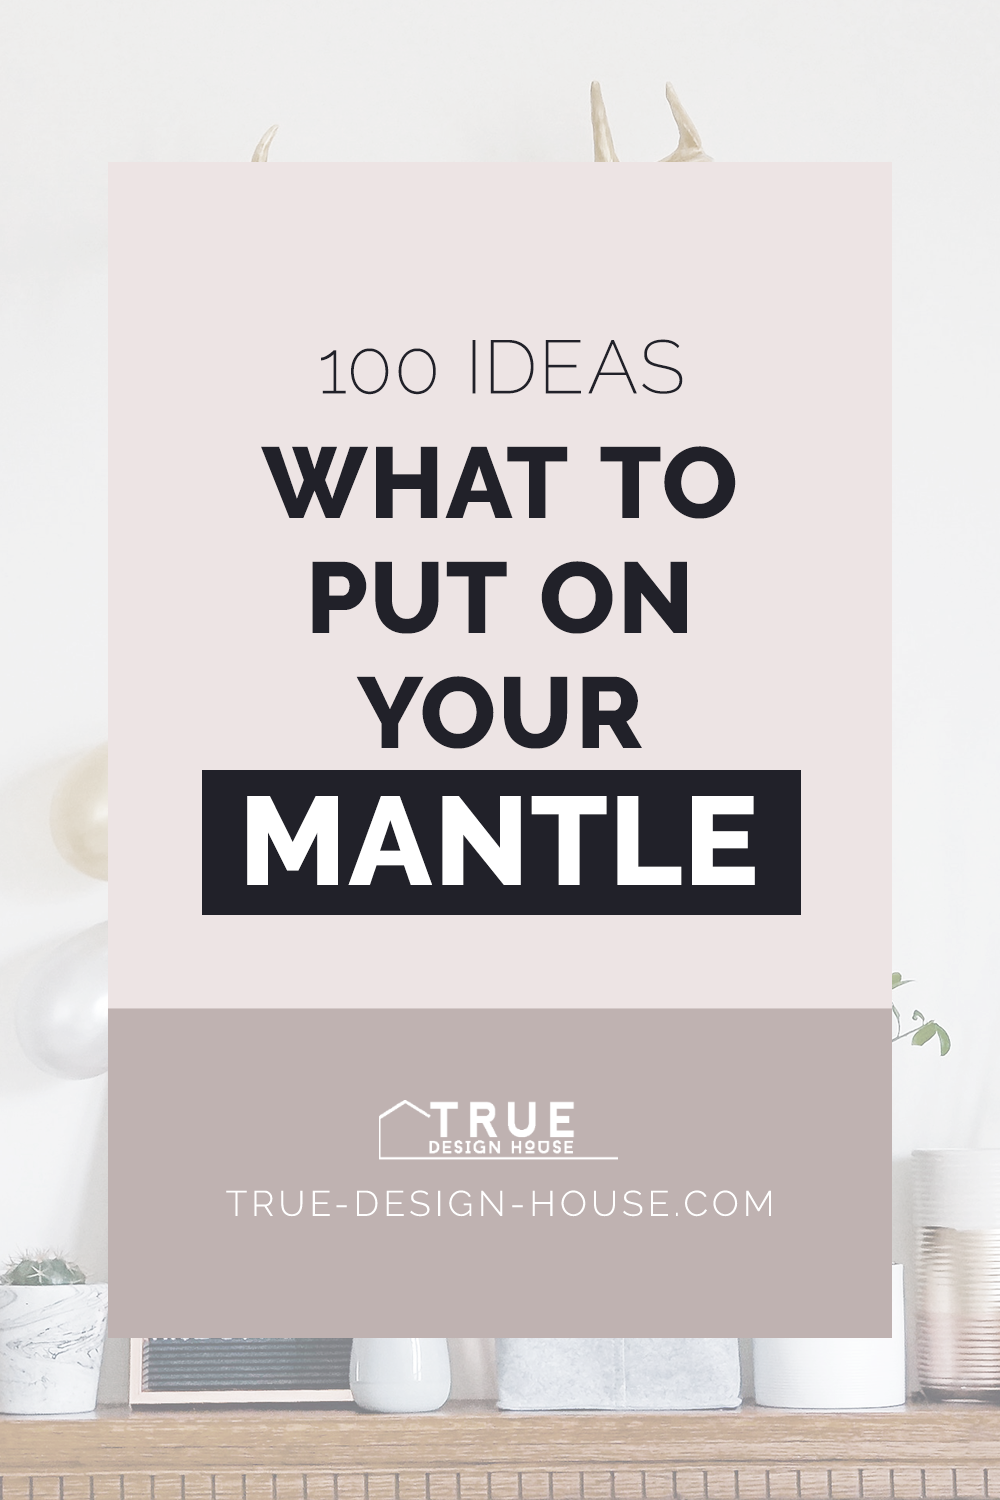 true design house - 100 things to put on your mantle - 44 - pinterest - 4.png